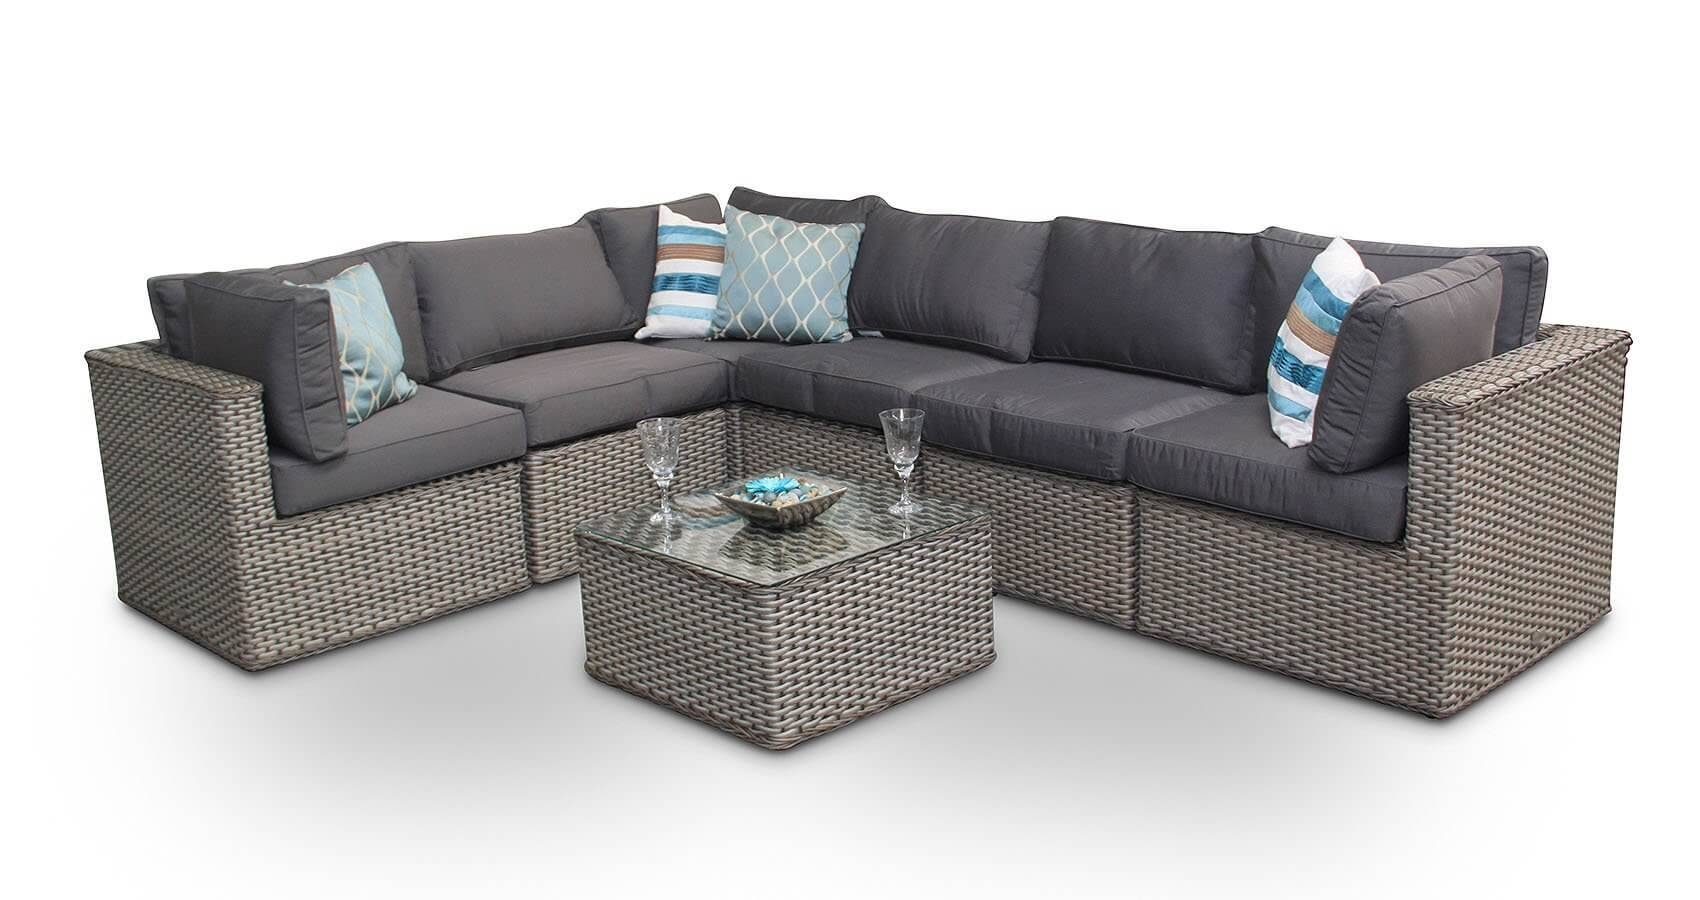 Manchester 10Pc Modular Rattan Sofa Dining Corner Sofa Set With with regard to Dining Sofa Chairs (Image 12 of 15)